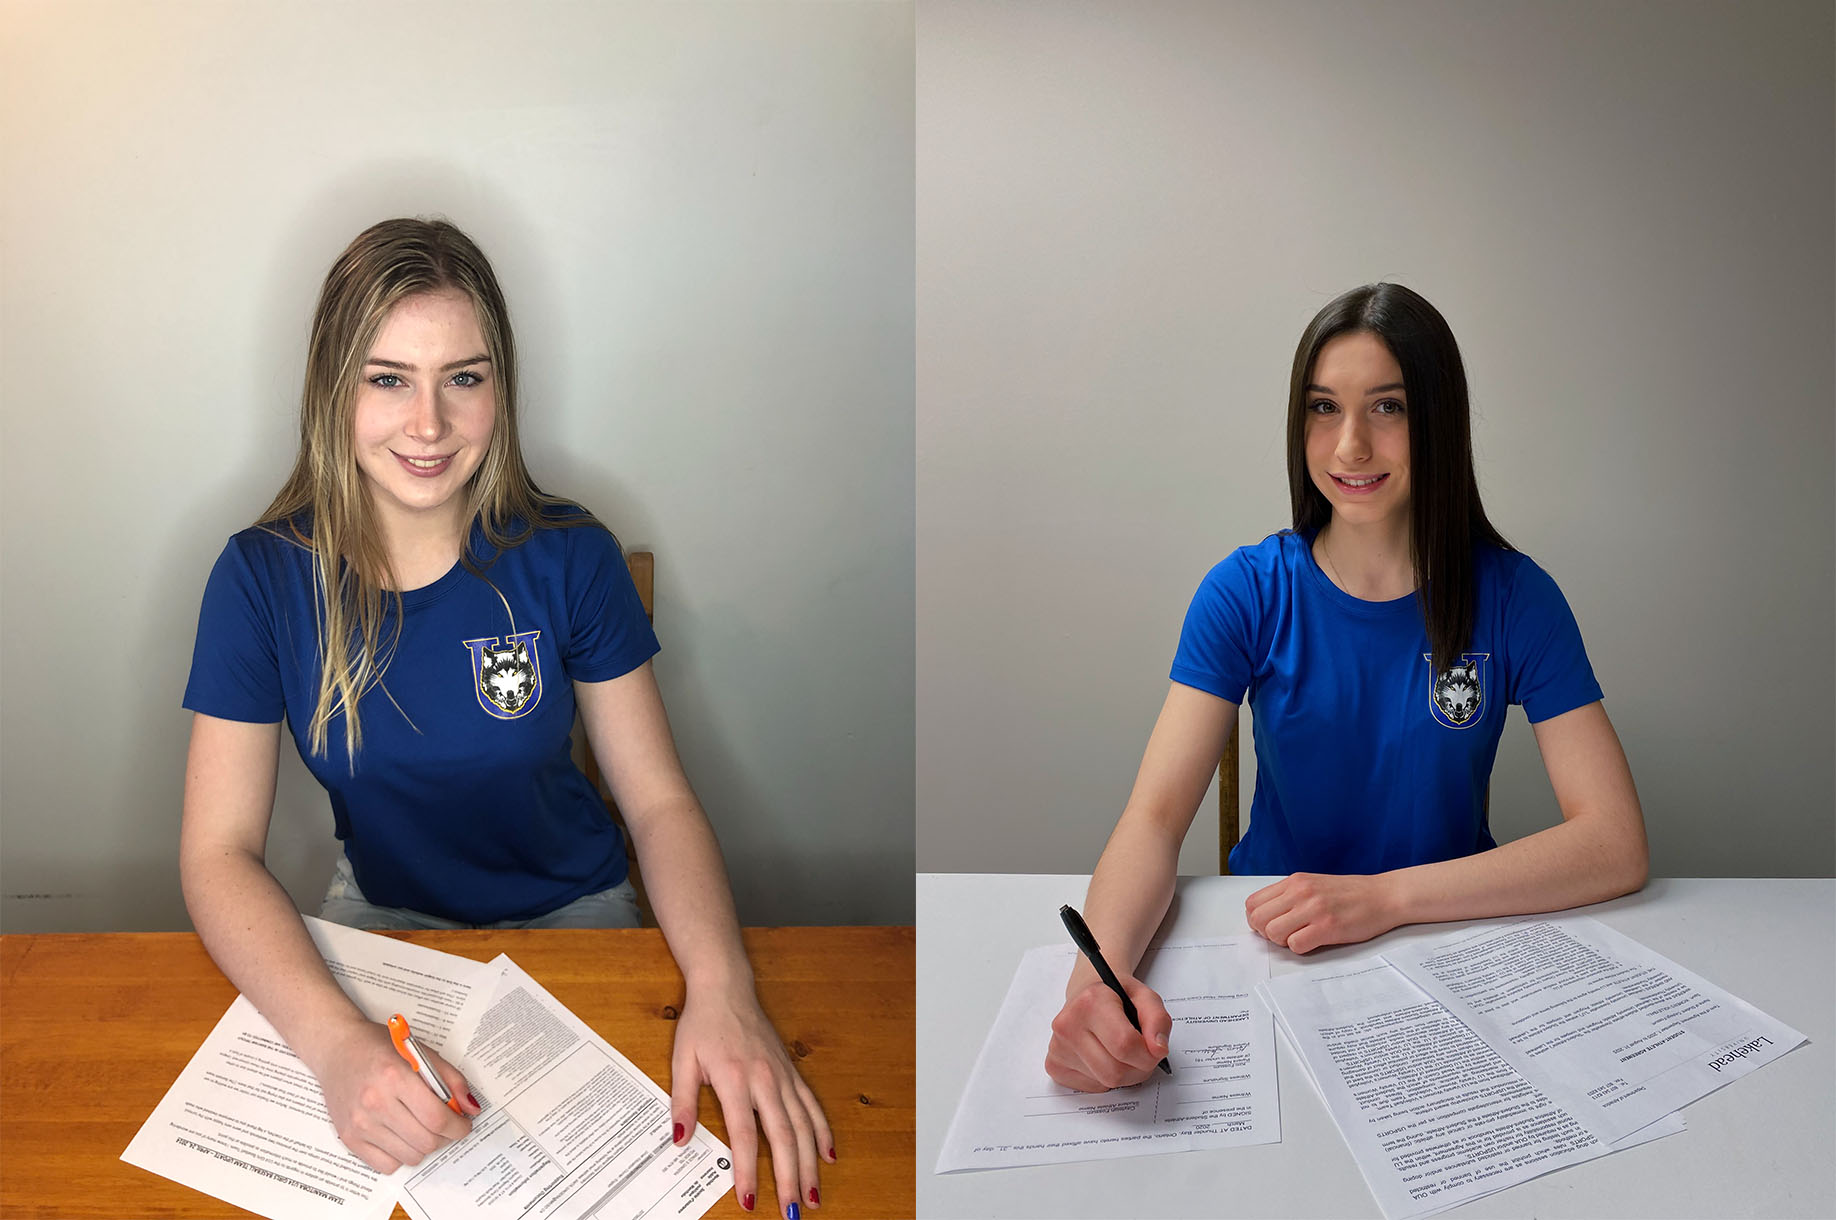 Cayleigh Fossum of Gorham, ON and Hannah Gingera of Dauphin, MB